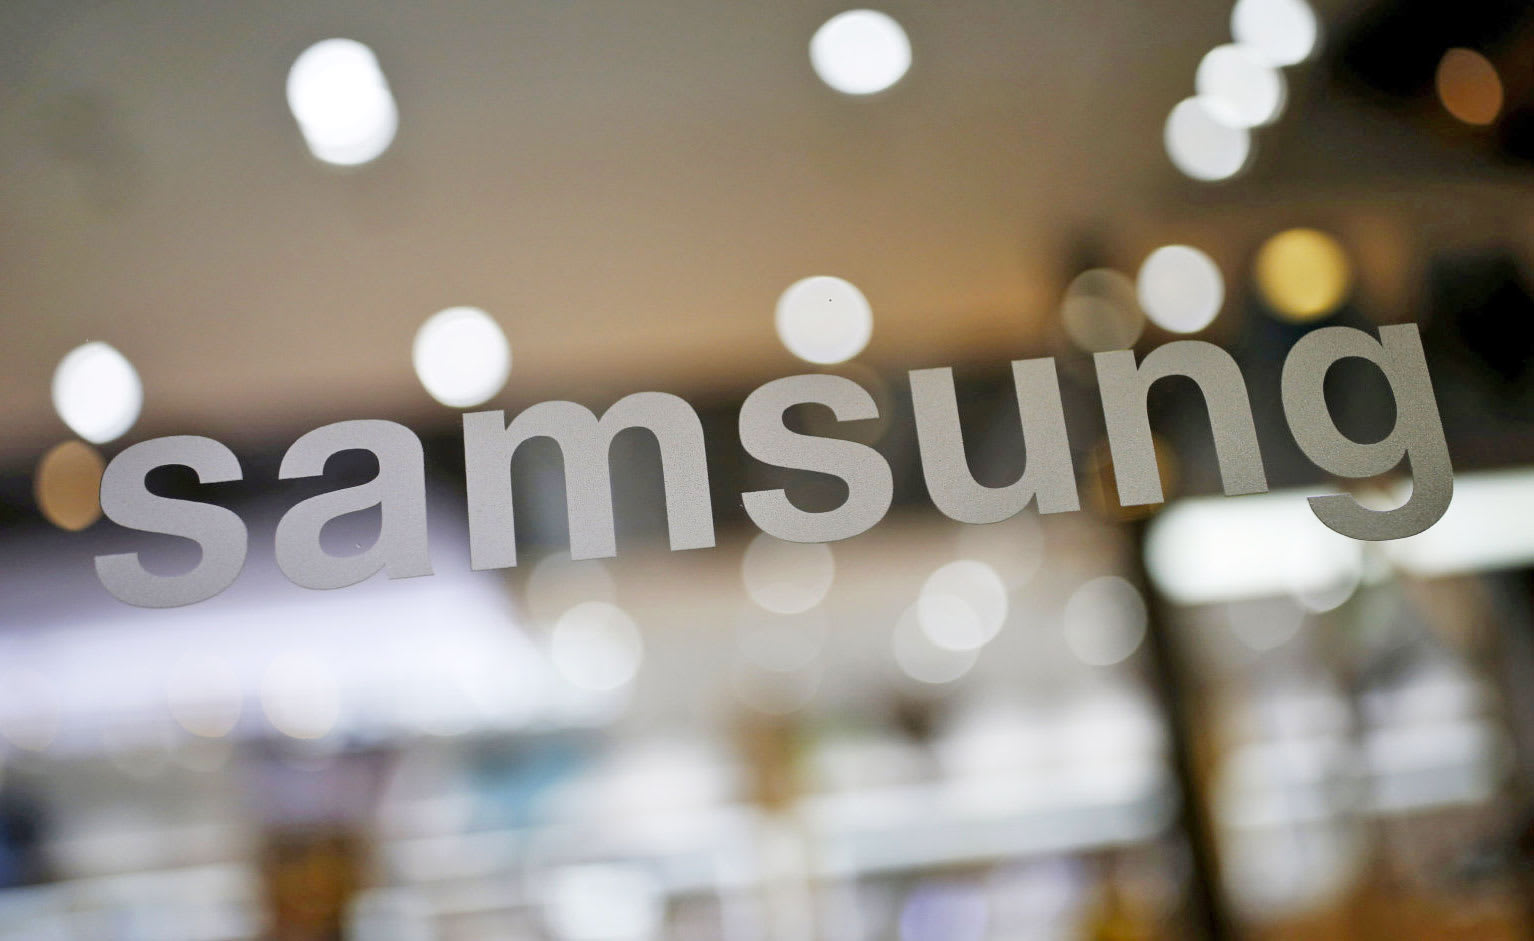 Samsung launches first Exynos chip with all radios built in